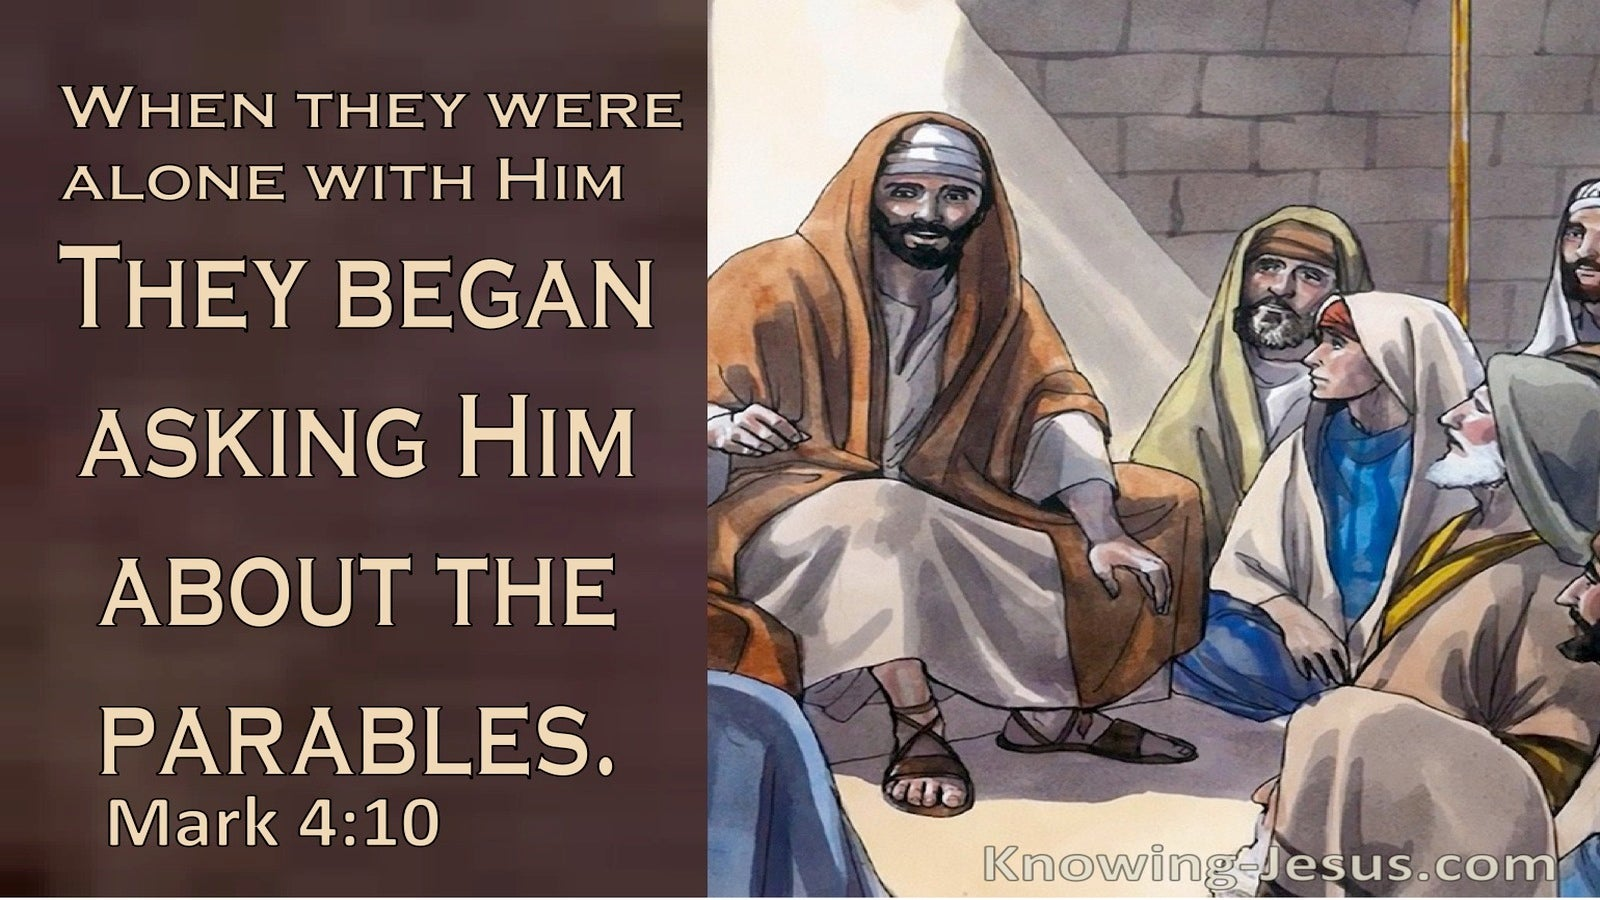 Mark 4:10 His Followers And The 12 Asked Him About The Parables (brown)